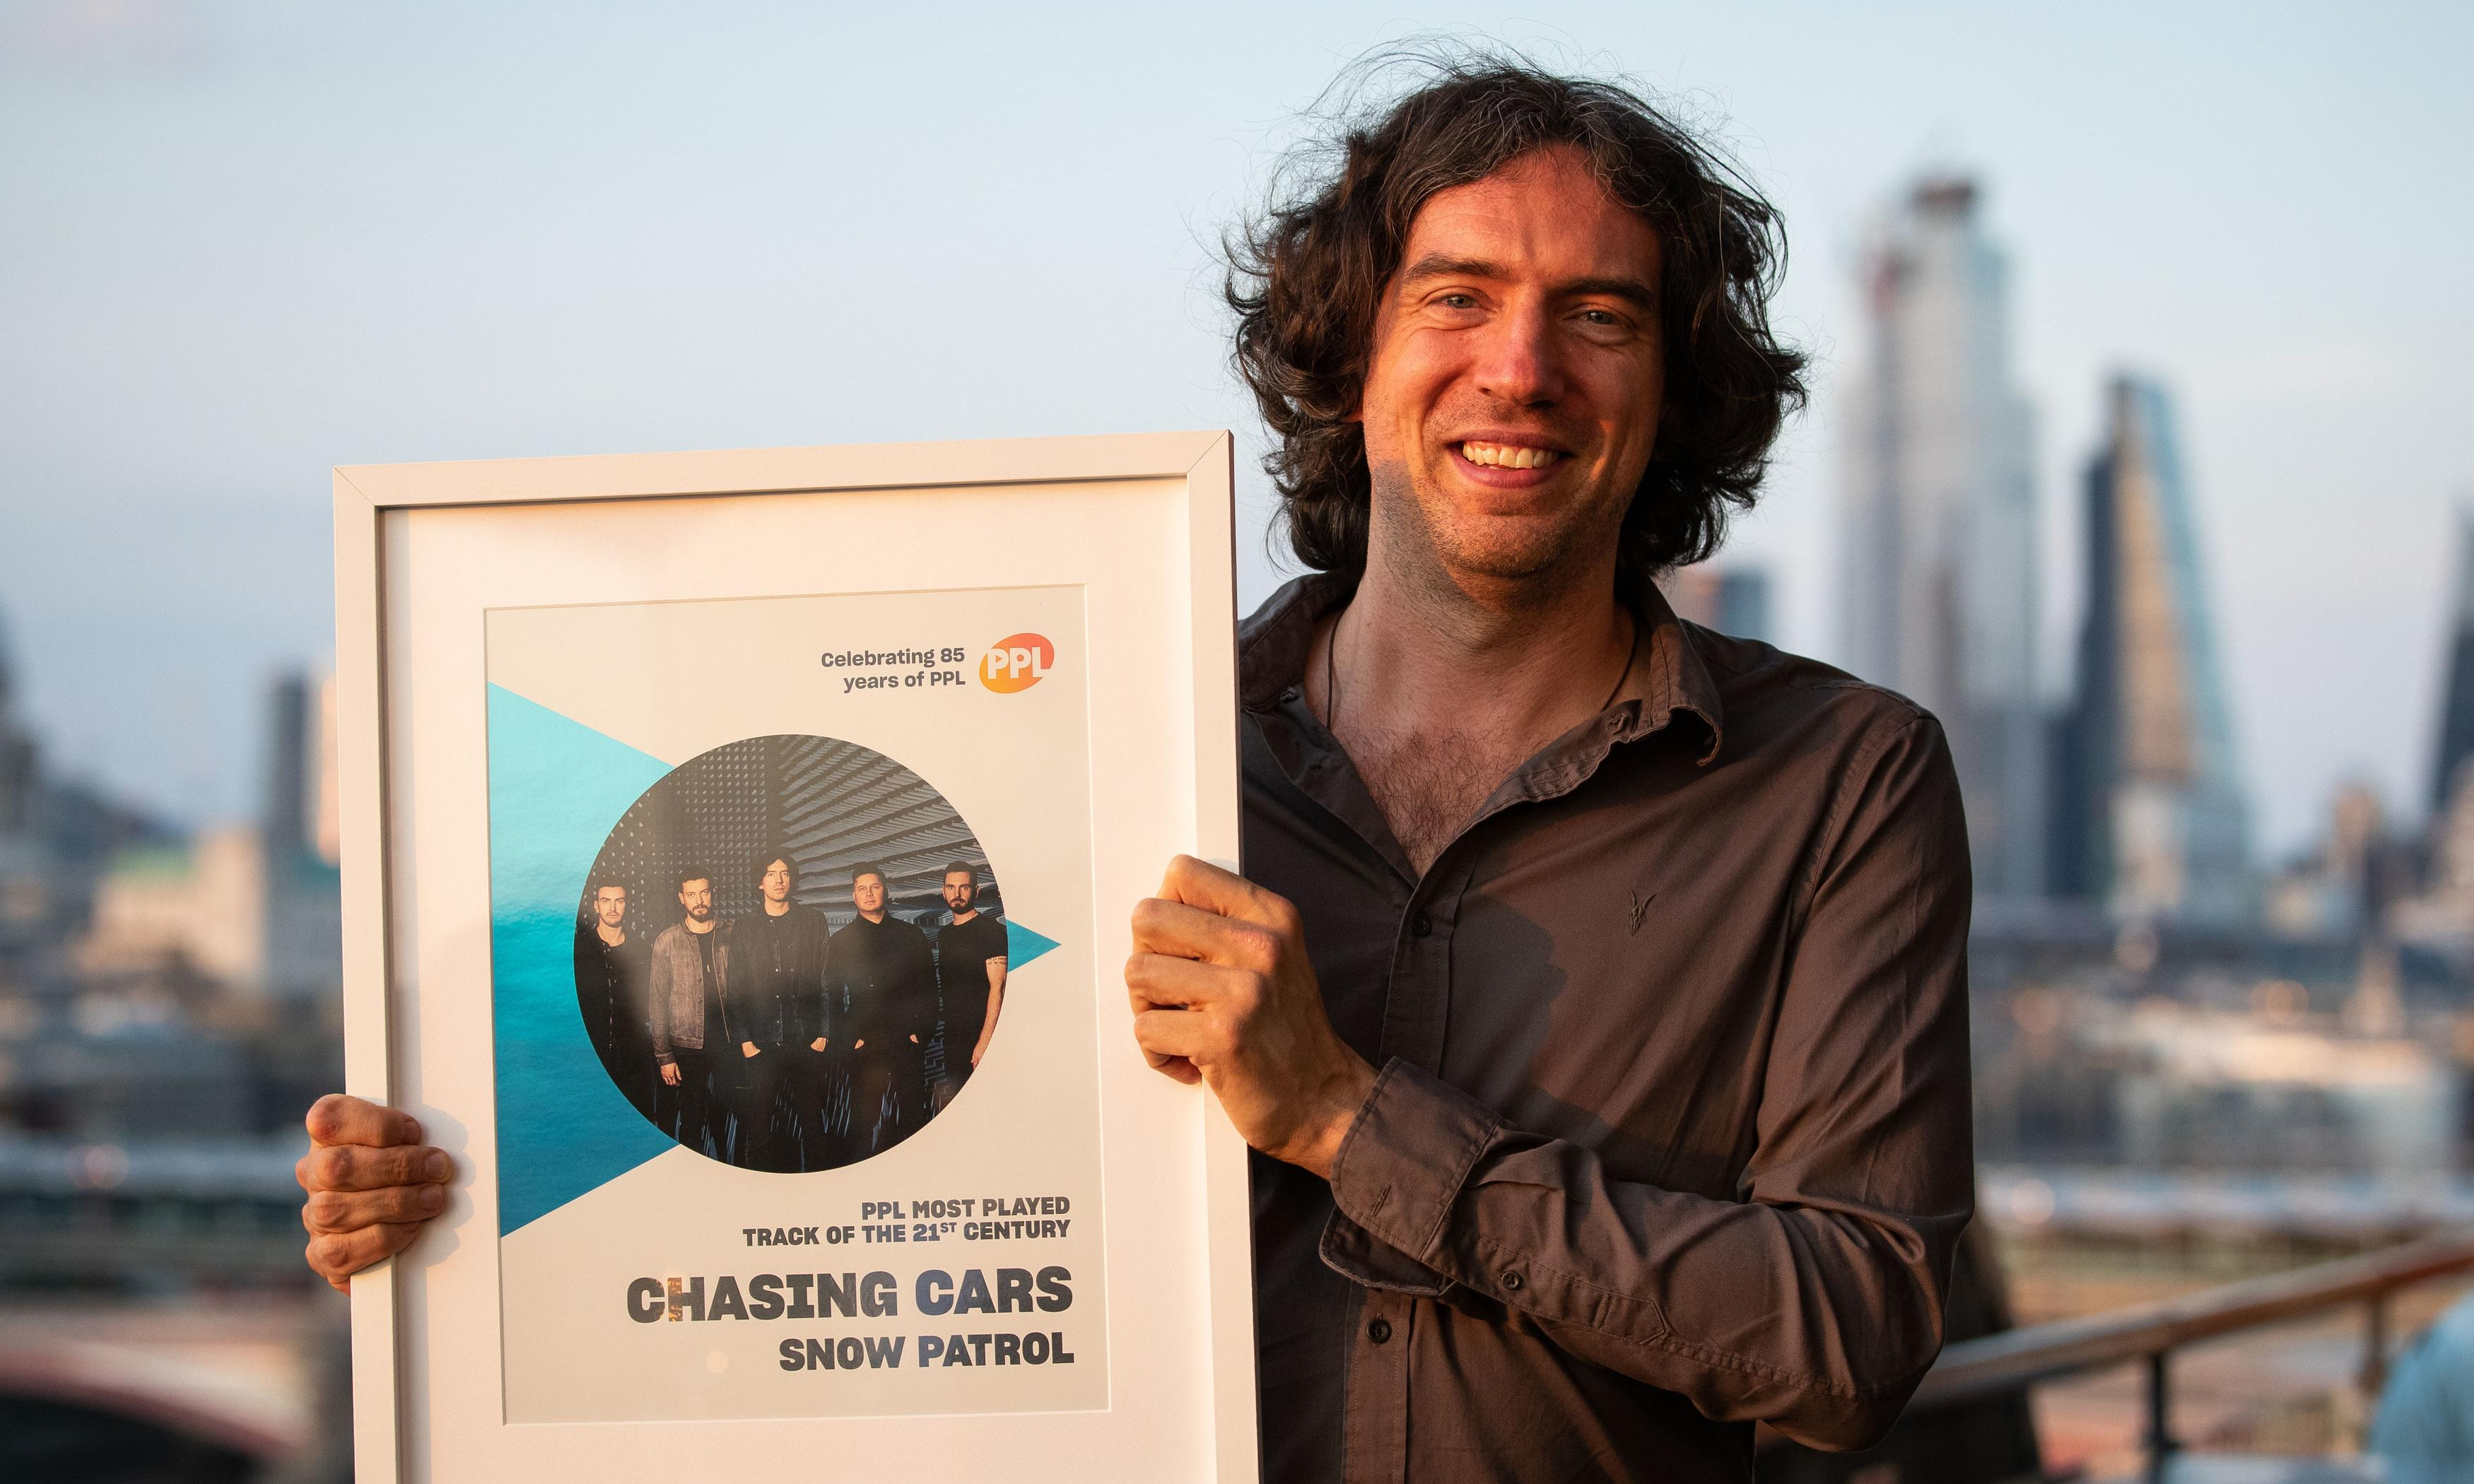 Chasing Cars by Snow Patrol is most-played song on UK radio this century